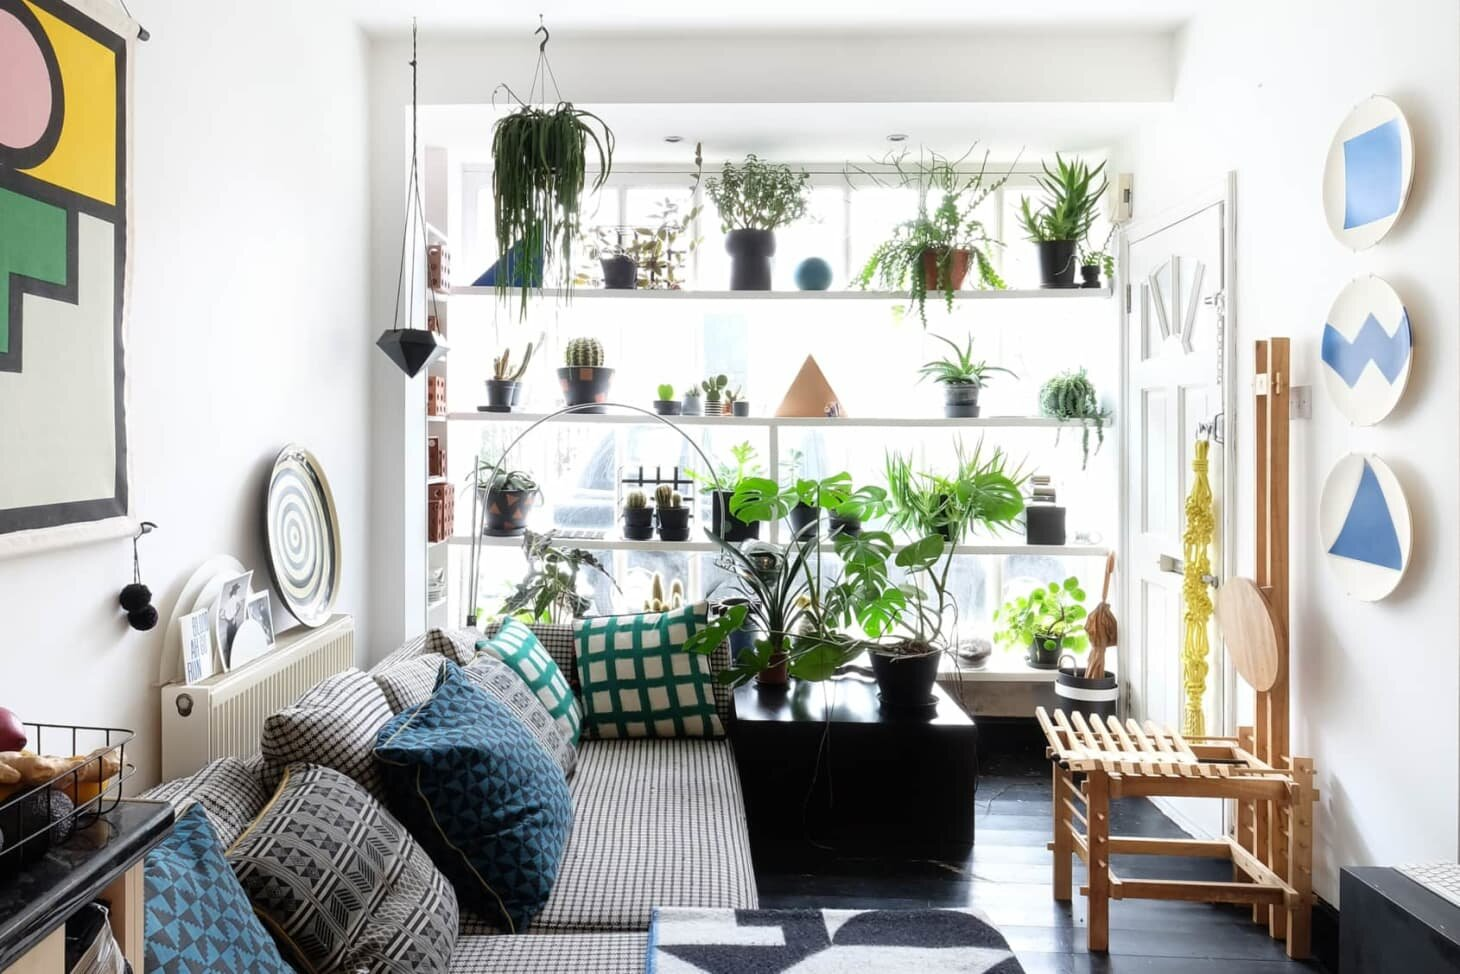 Apartment Therapy - 8 Design Trends That Will Rule the Rest of 2019, According to Experts